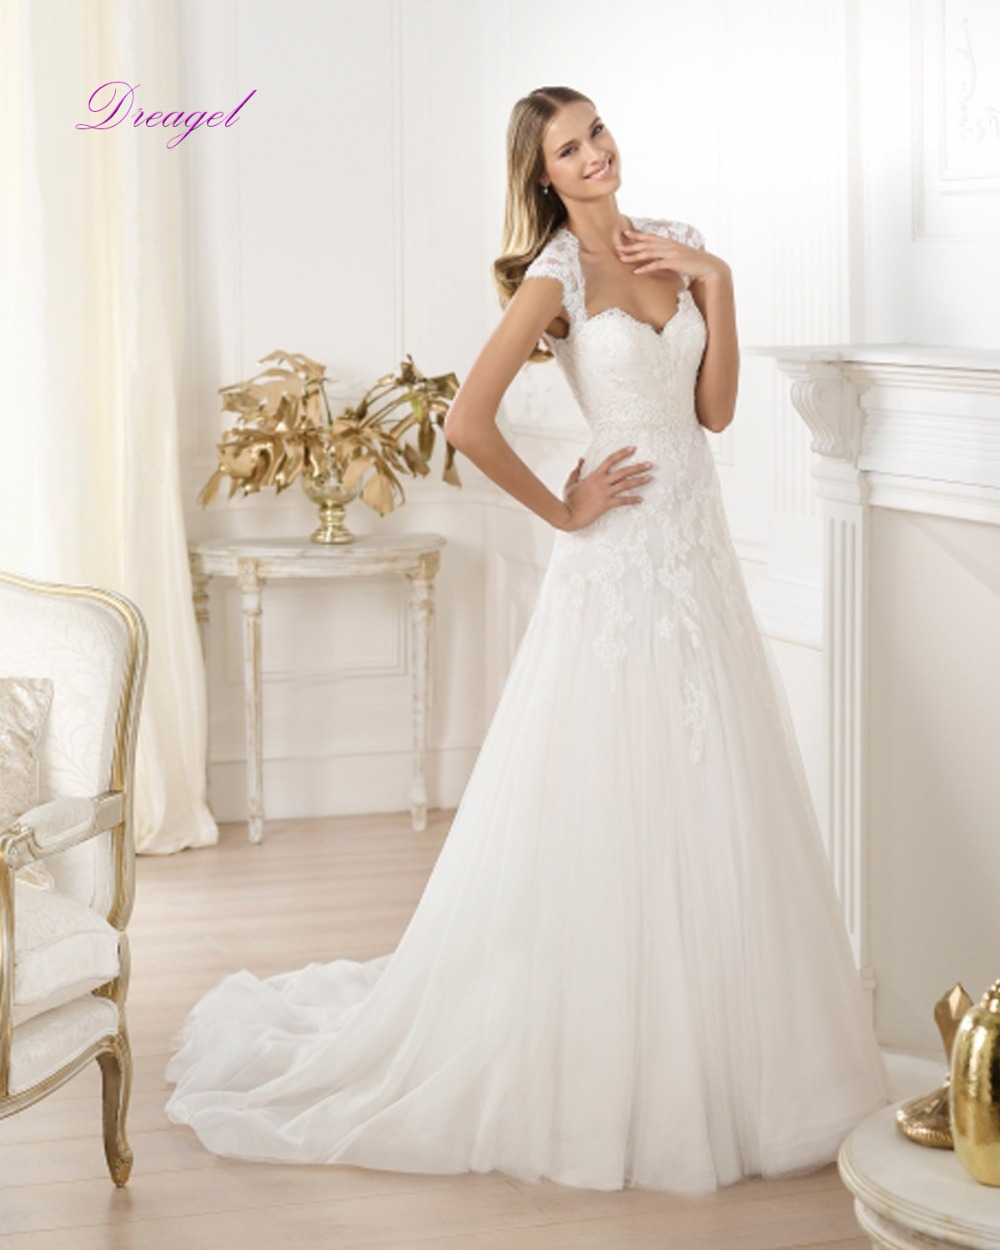 dreagel new design a line appliques lace wedding dress 2017 sexy sweetheart neckline backless robe